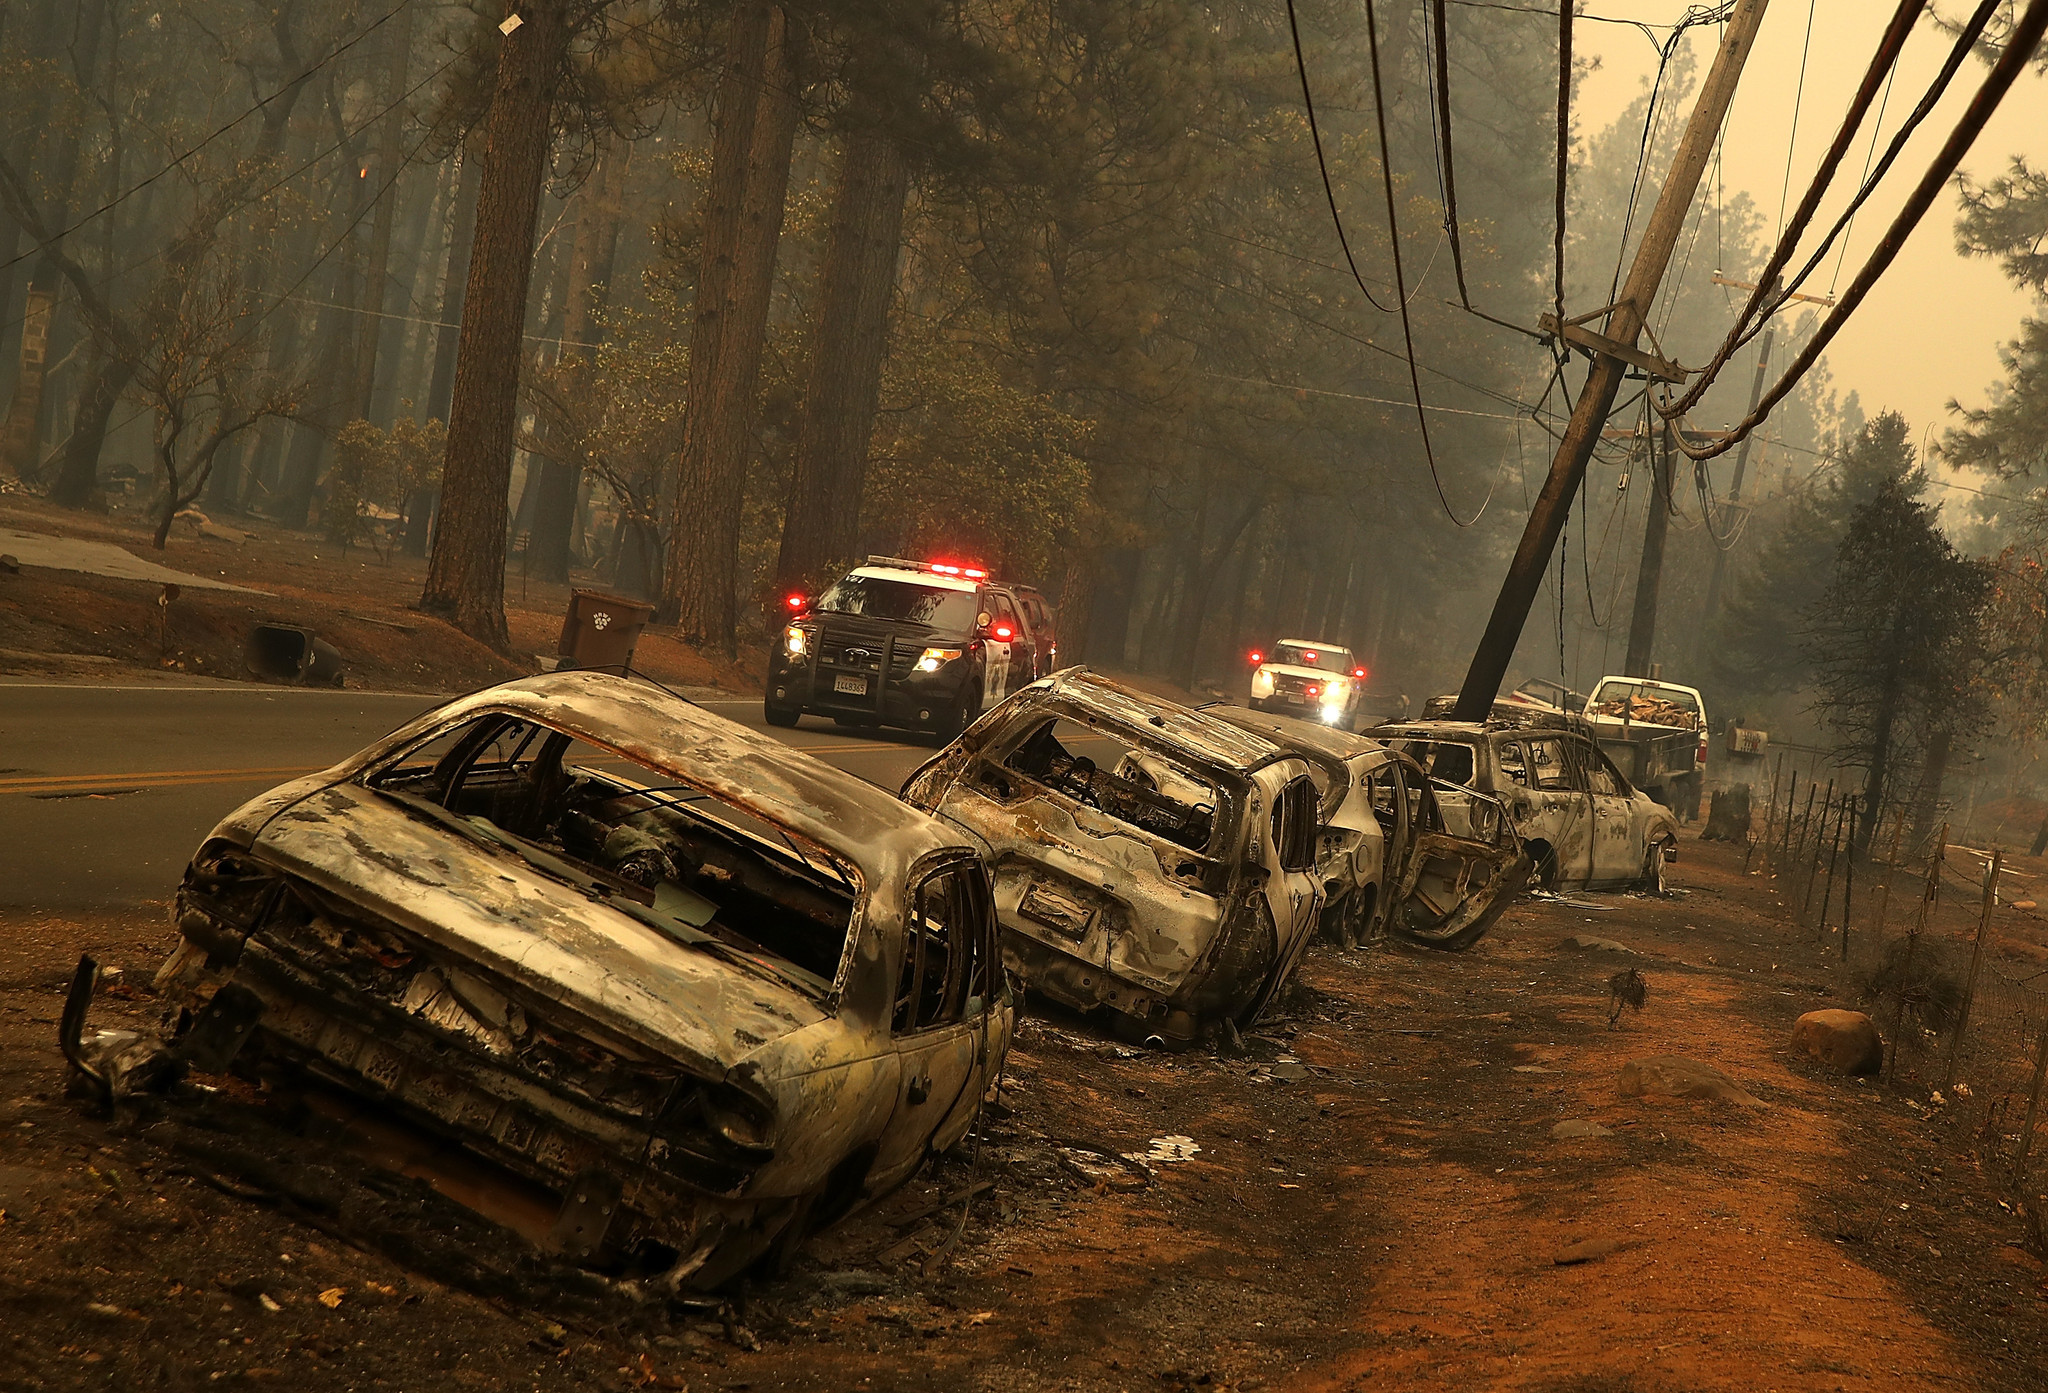 Abandoned cars charred by fire